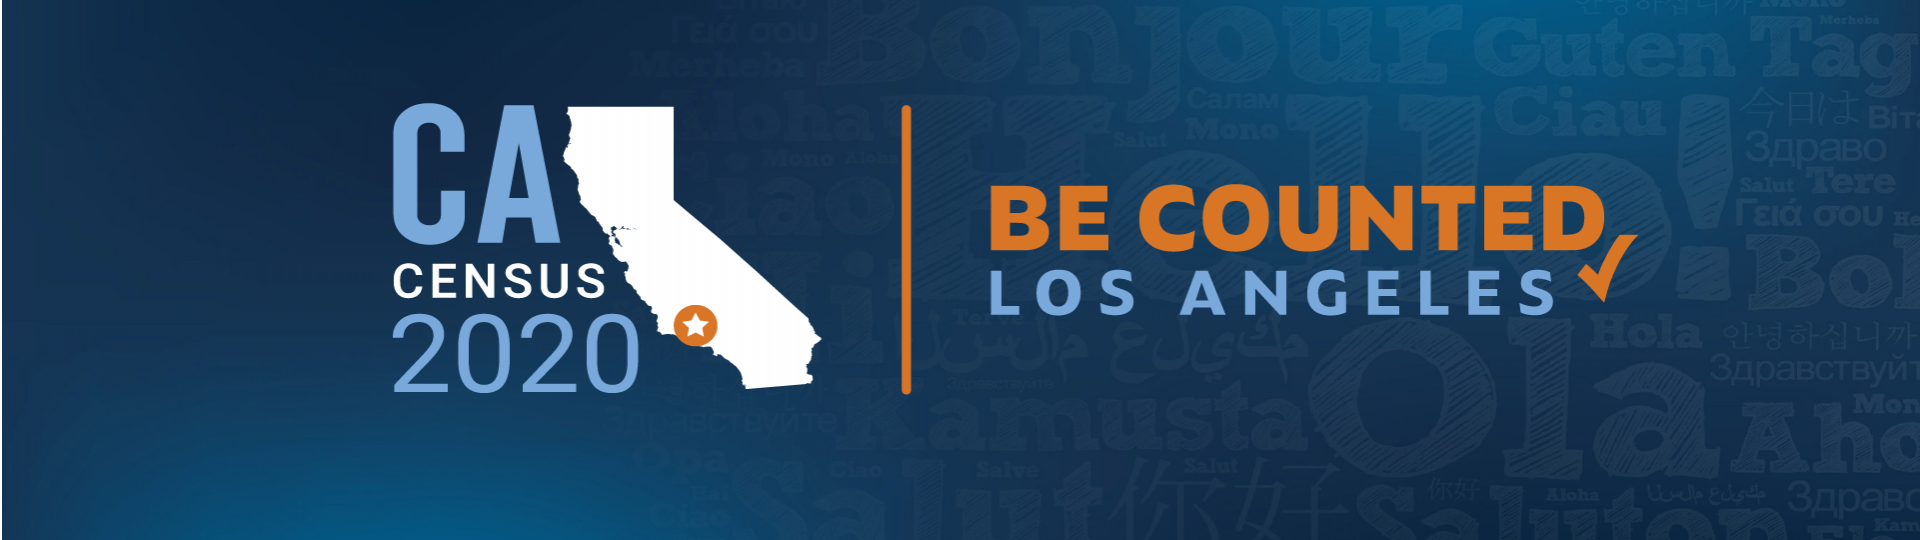 CA Census 2020. Be Counted Los Angeles.